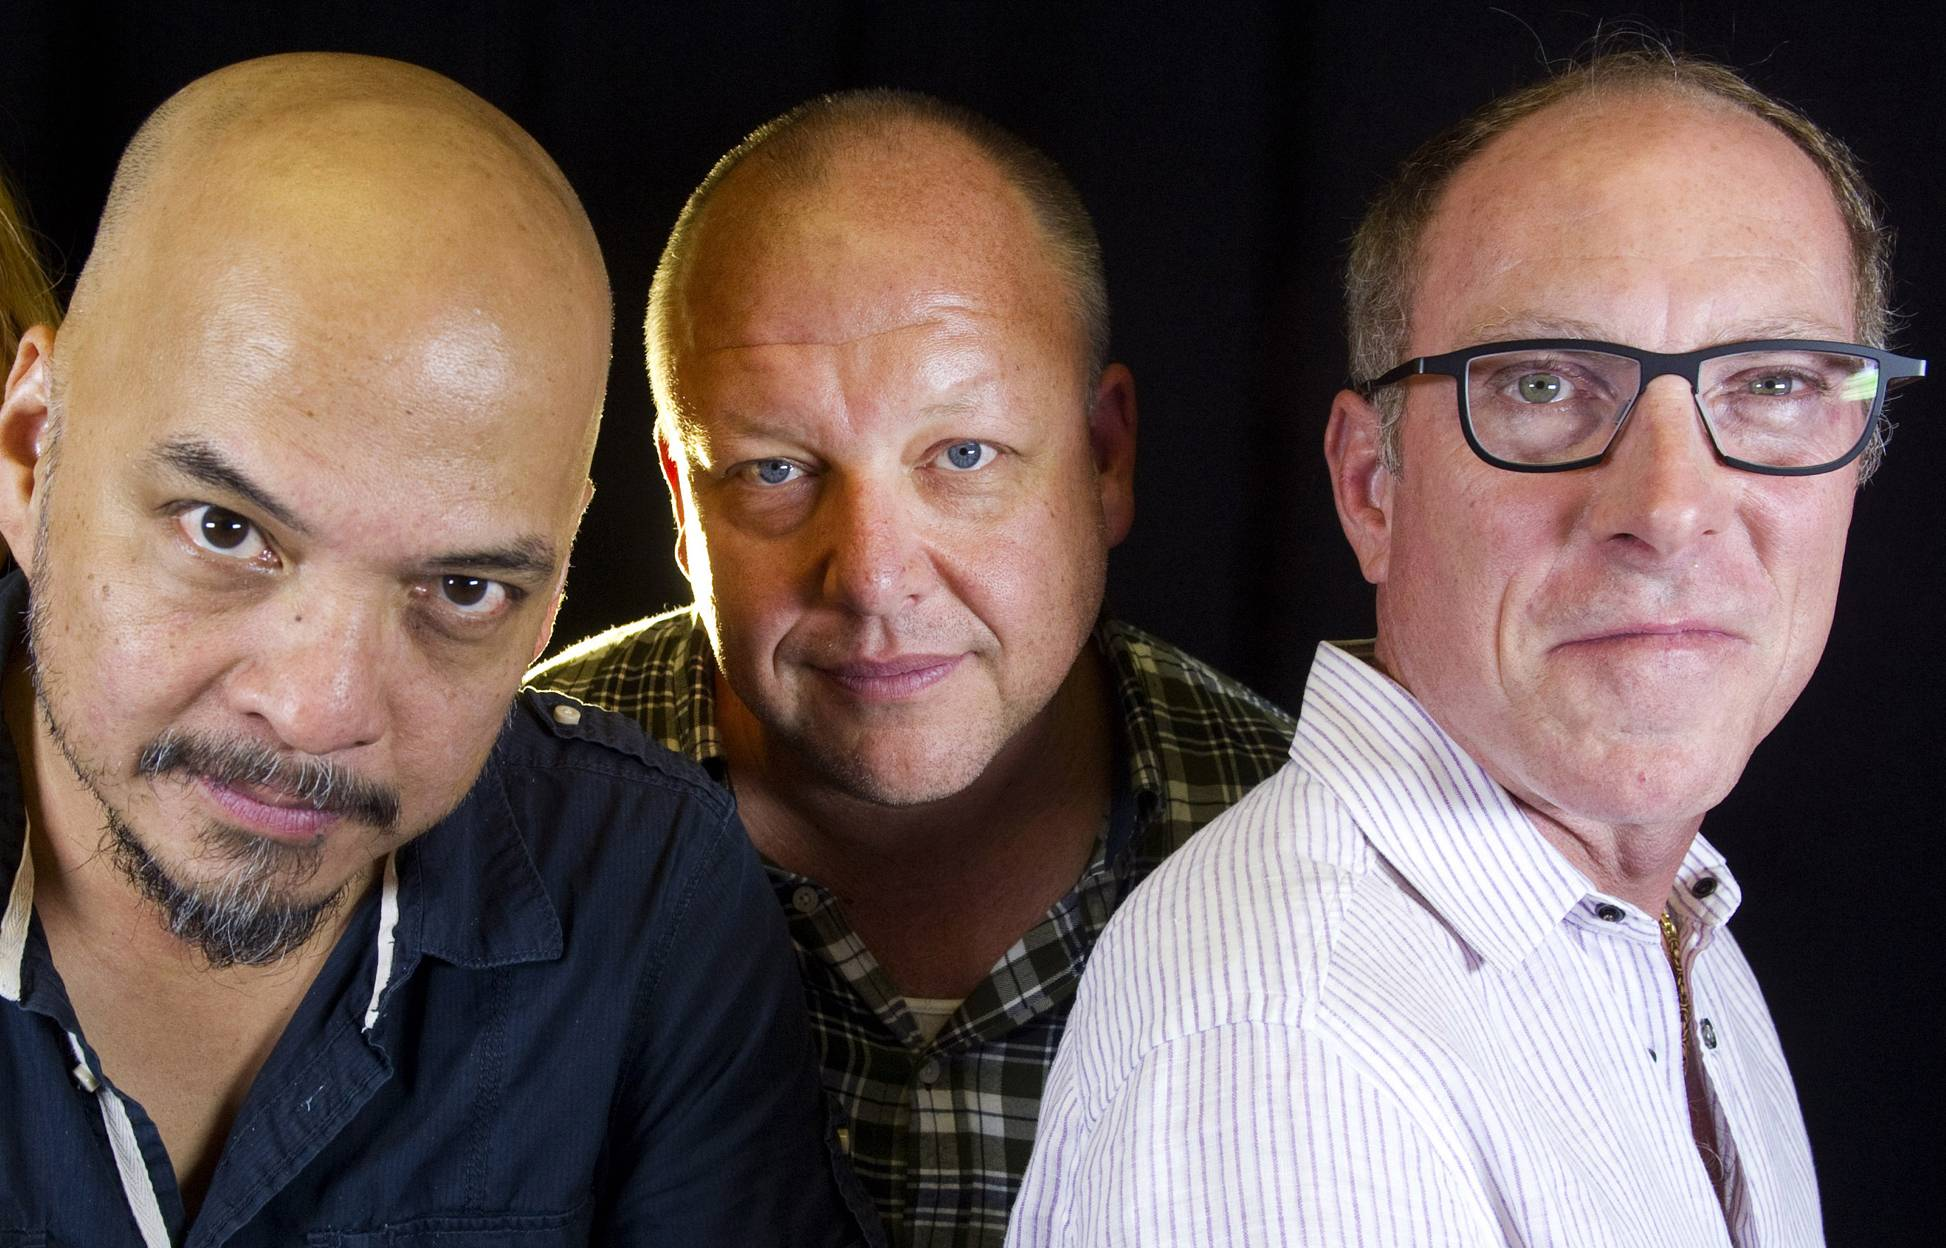 The Pixies — featuring Joey Santiago, left, Black Francis and David Lovering — are making new music and planning to tour.